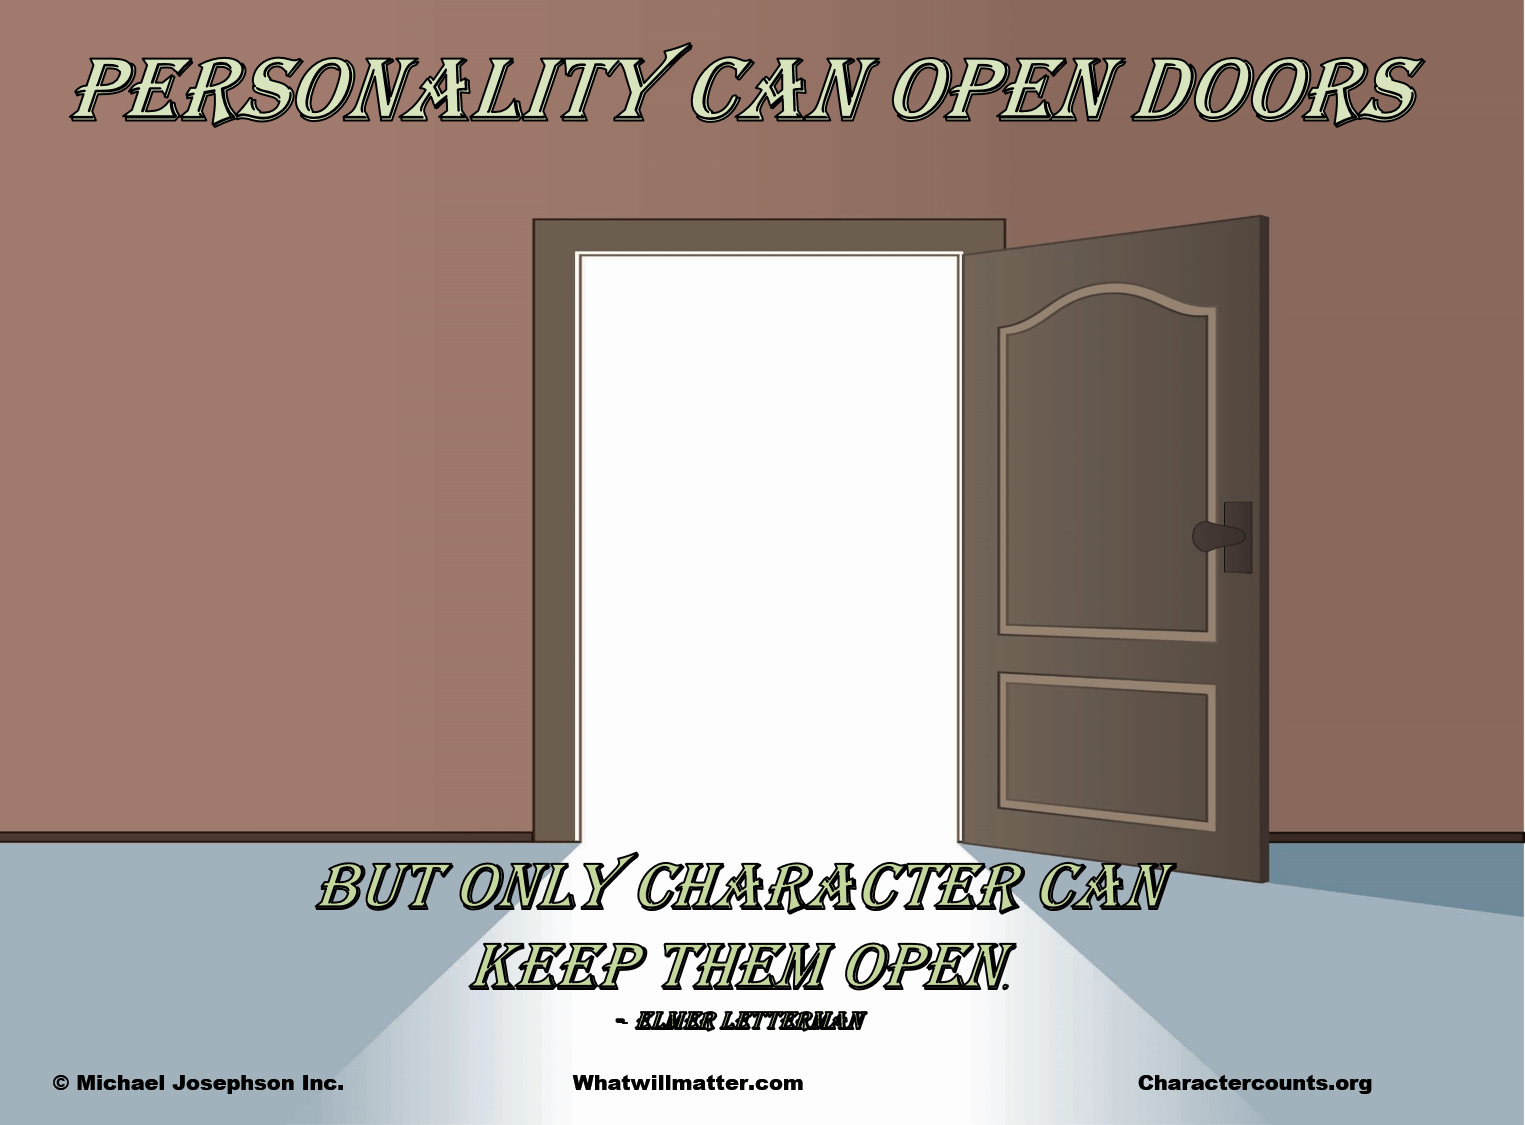 01 personality & Personality can open doors but only character can keep them open ...